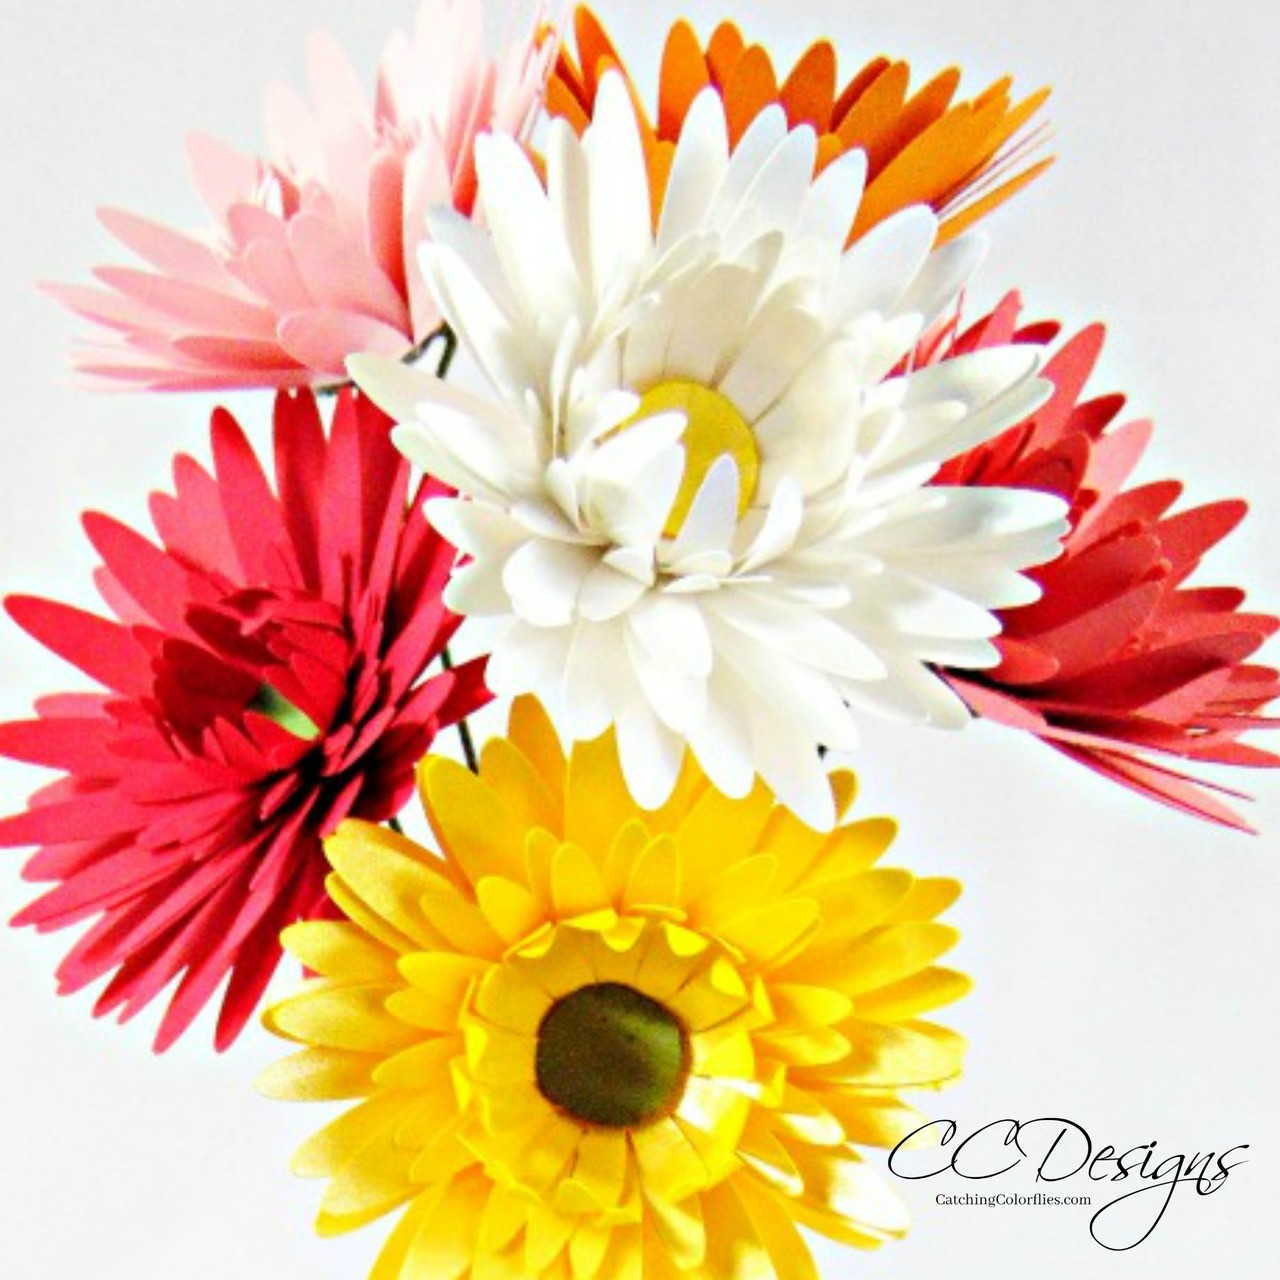 Small Gerbera Daisy Paper Flower Template Catching Colorlfies